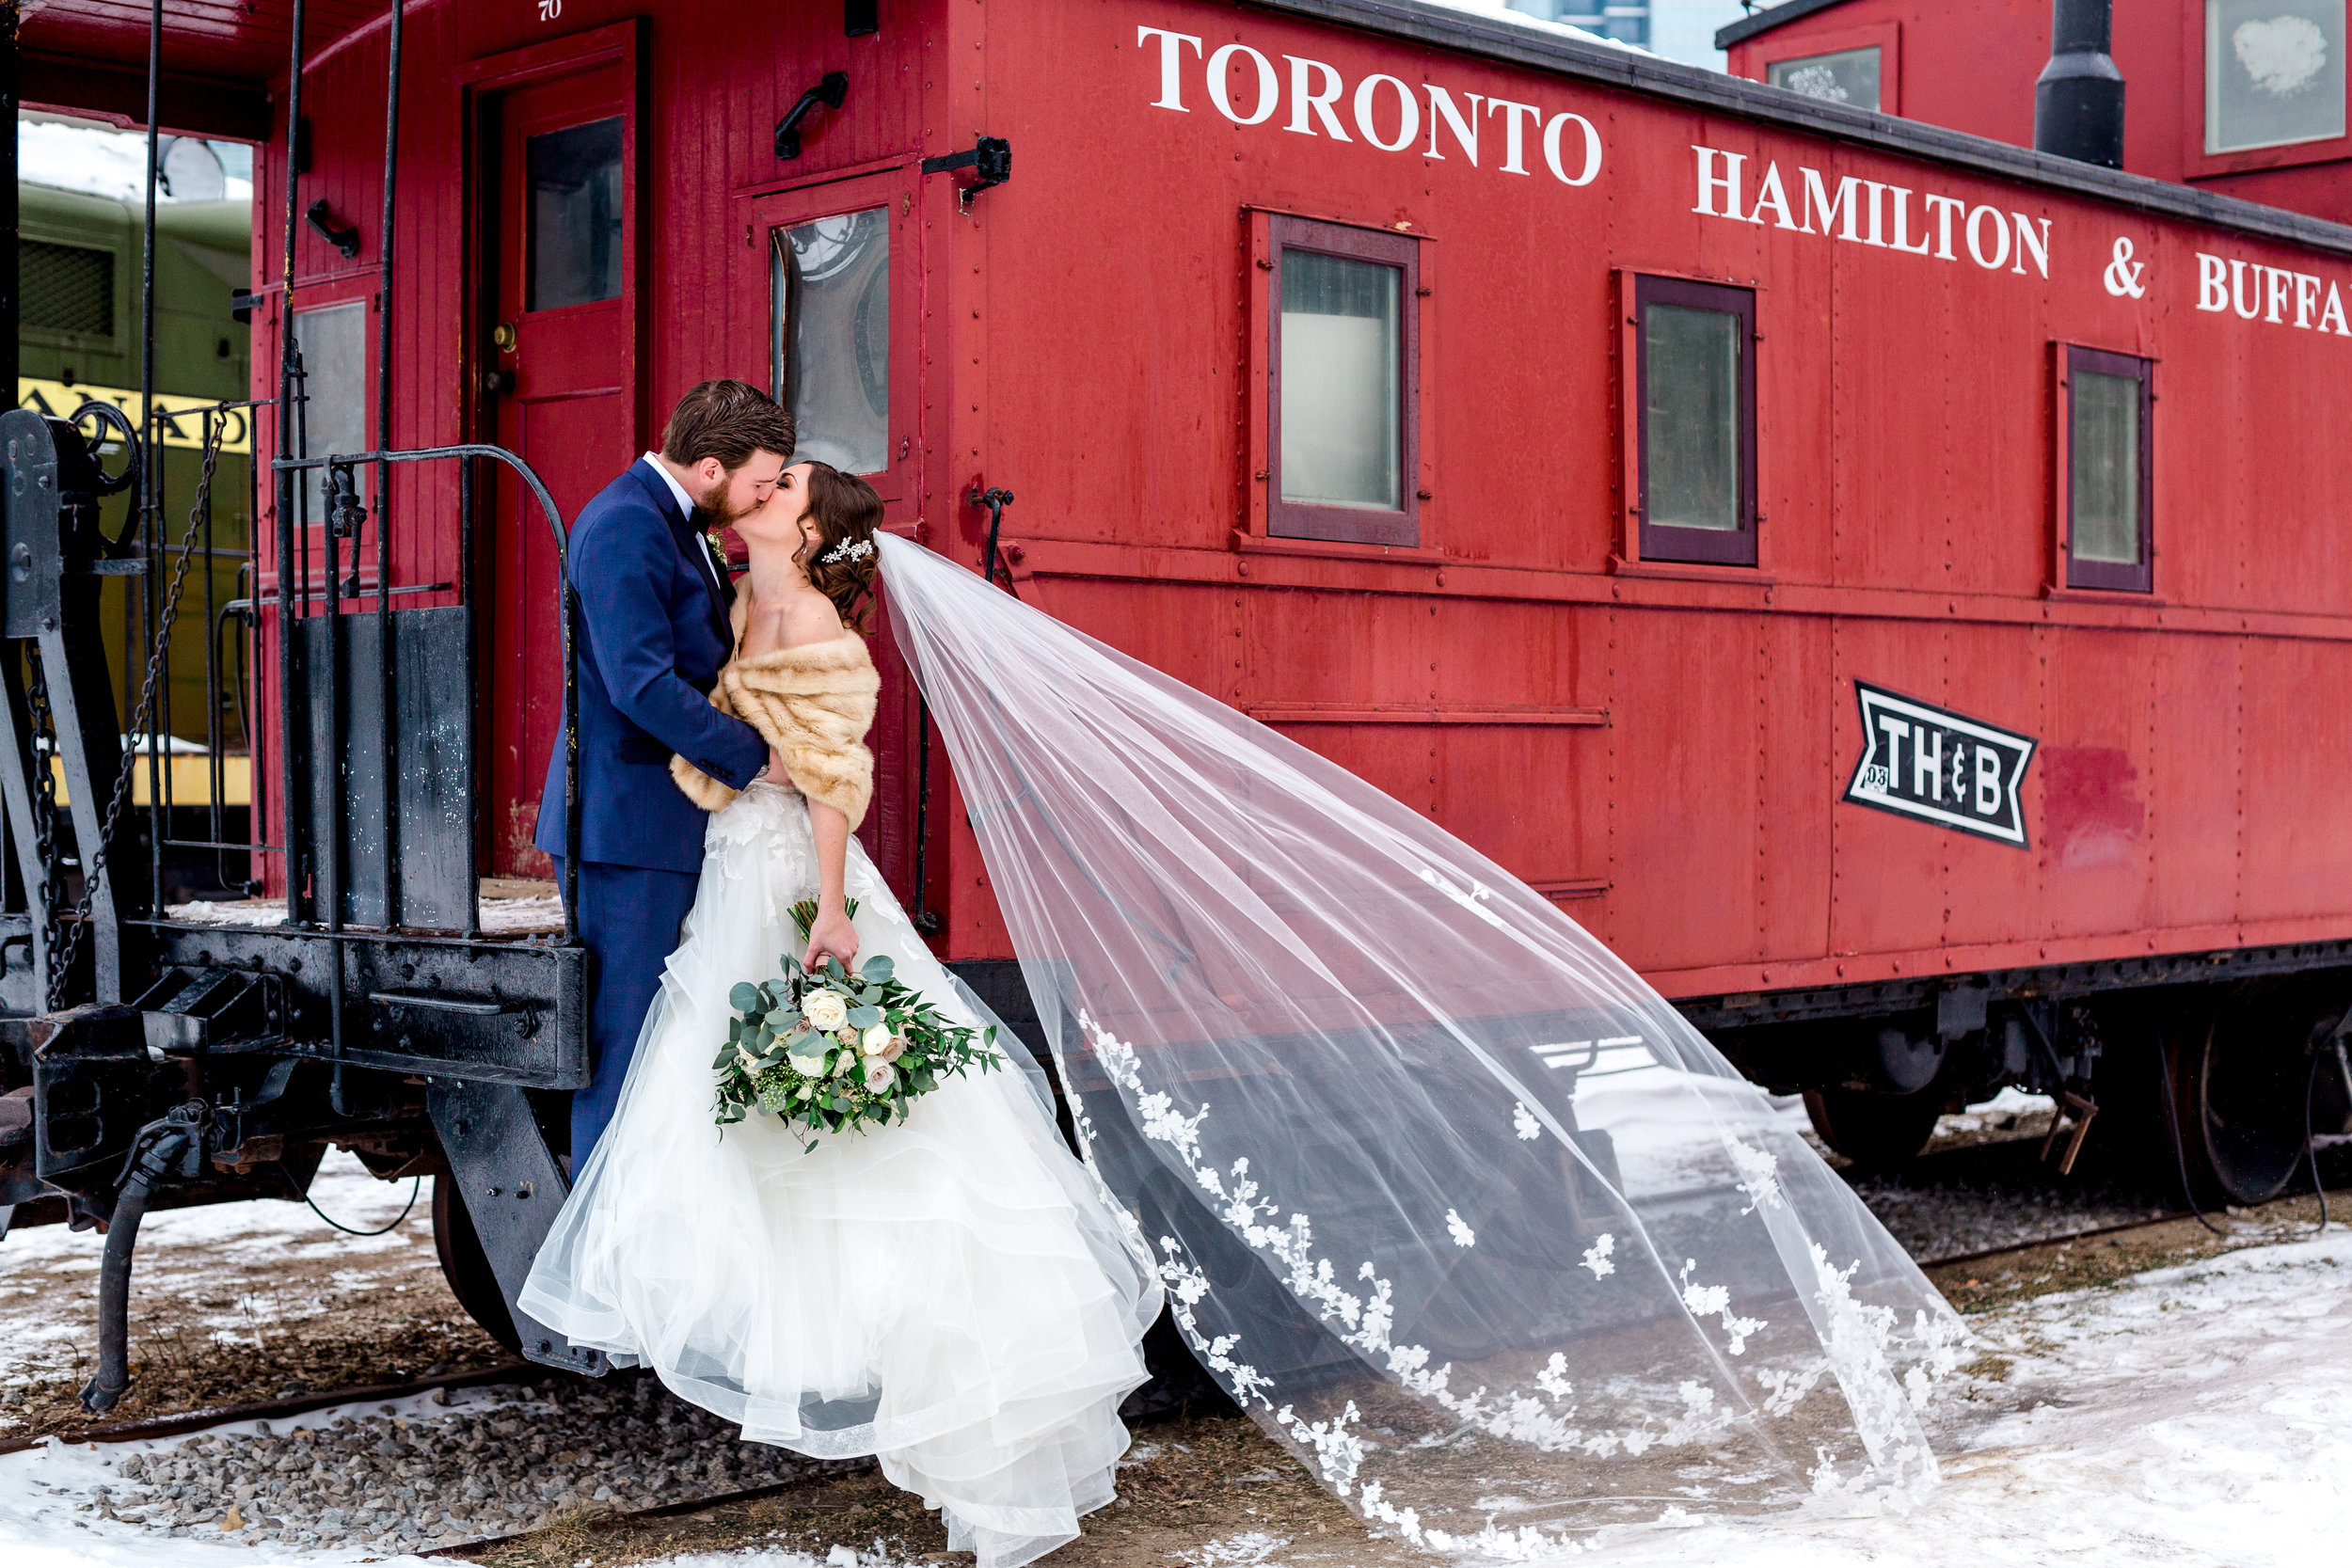 Amir_Danielle_Whitfield_Wedding_Steam_Whistle_Toronto_328.jpg